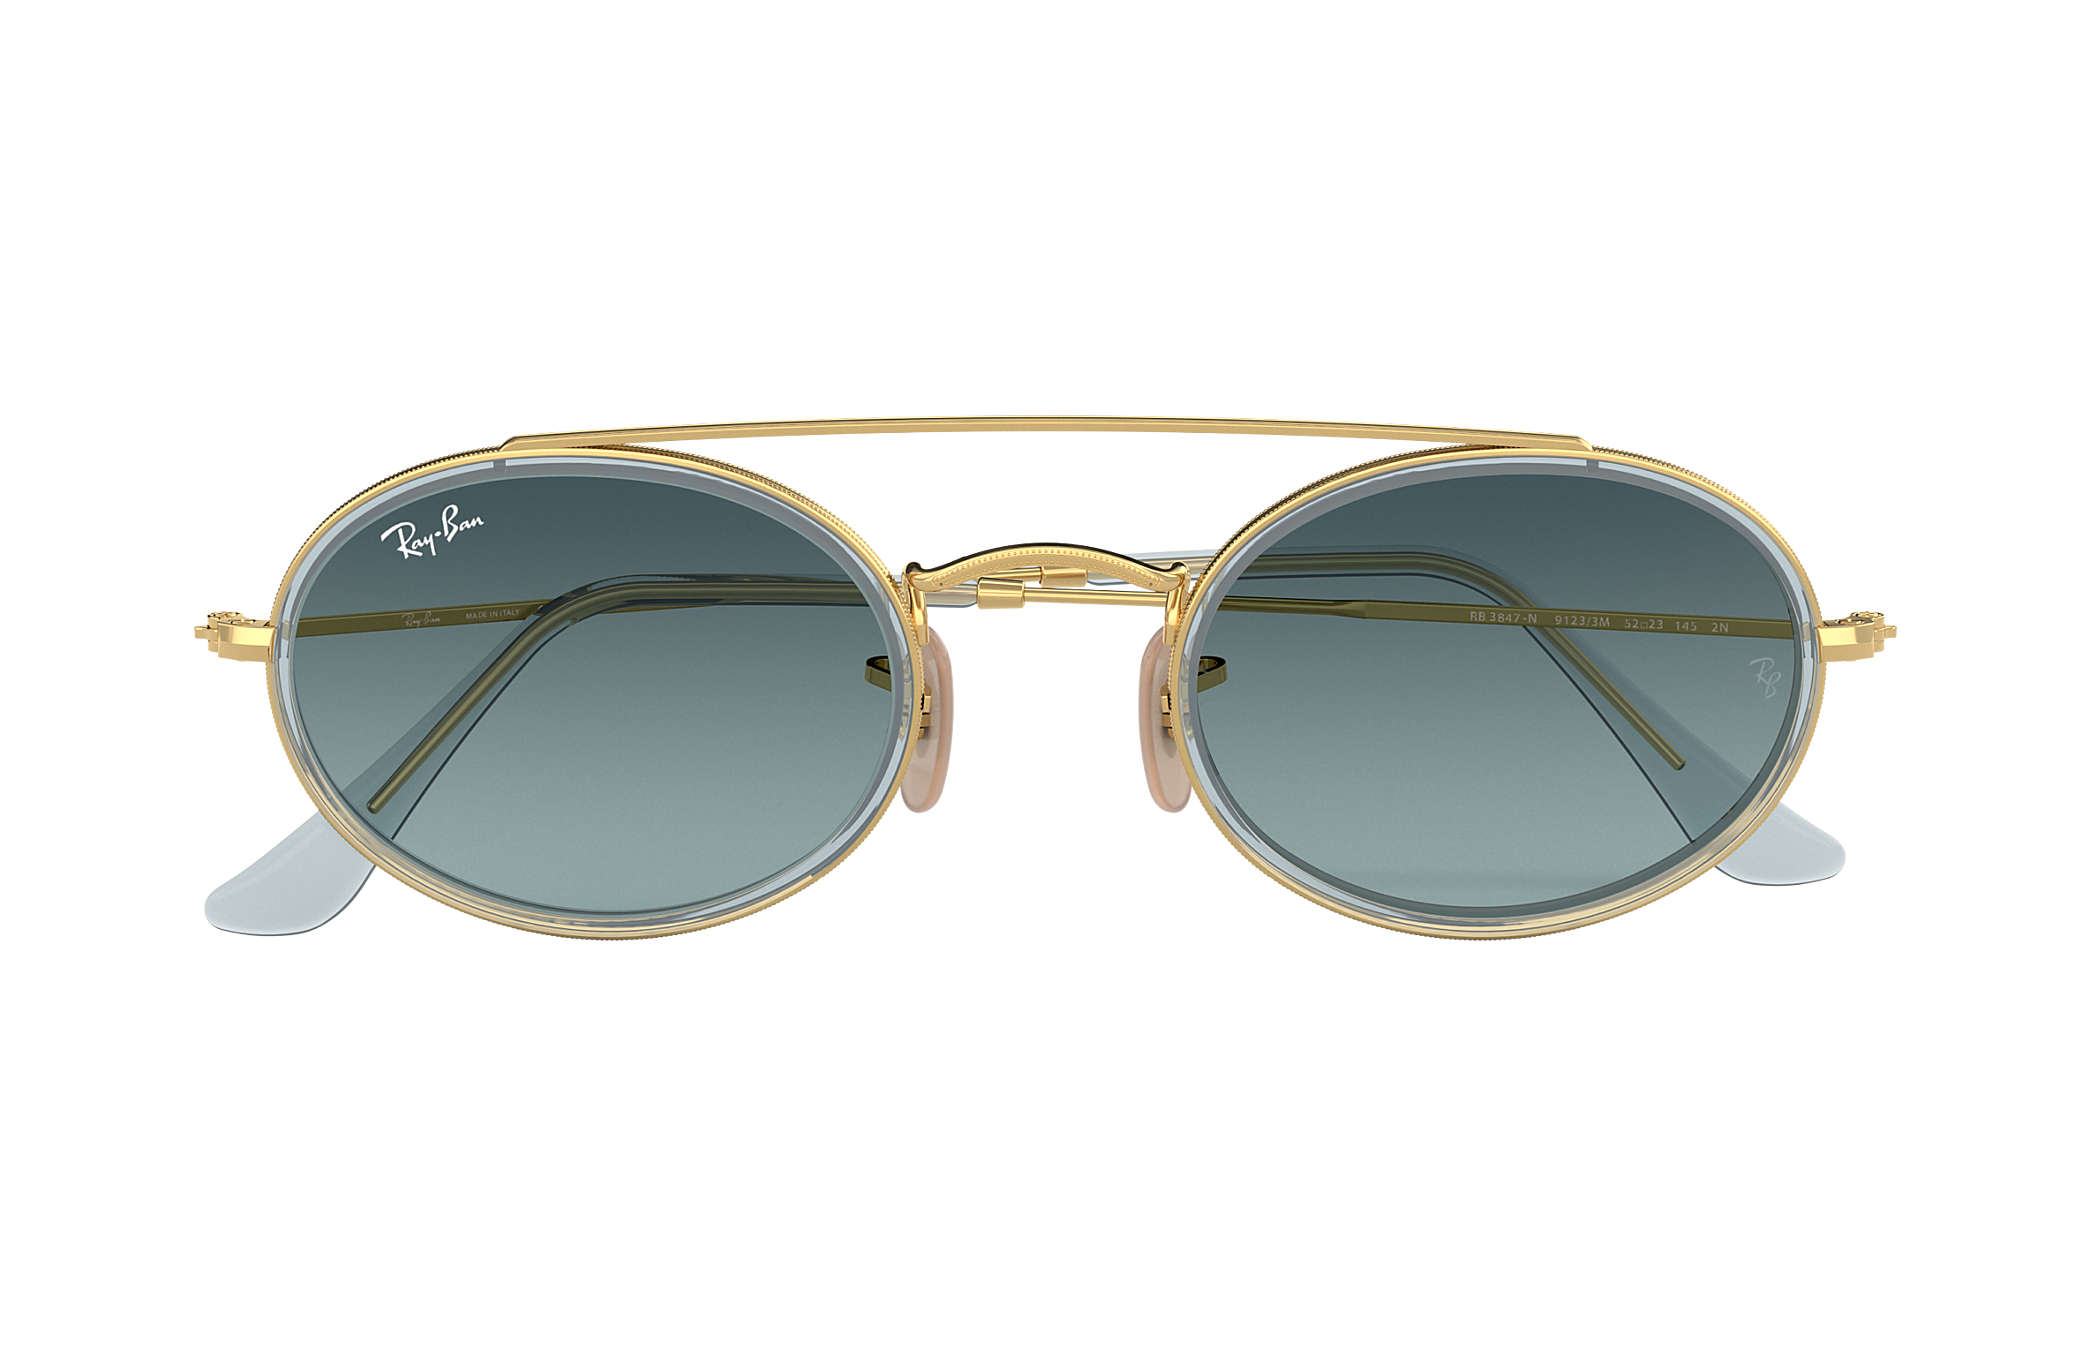 013287ad00 Ray-Ban Oval Double Bridge RB3847N Gold - Metal - Blue Lenses ...